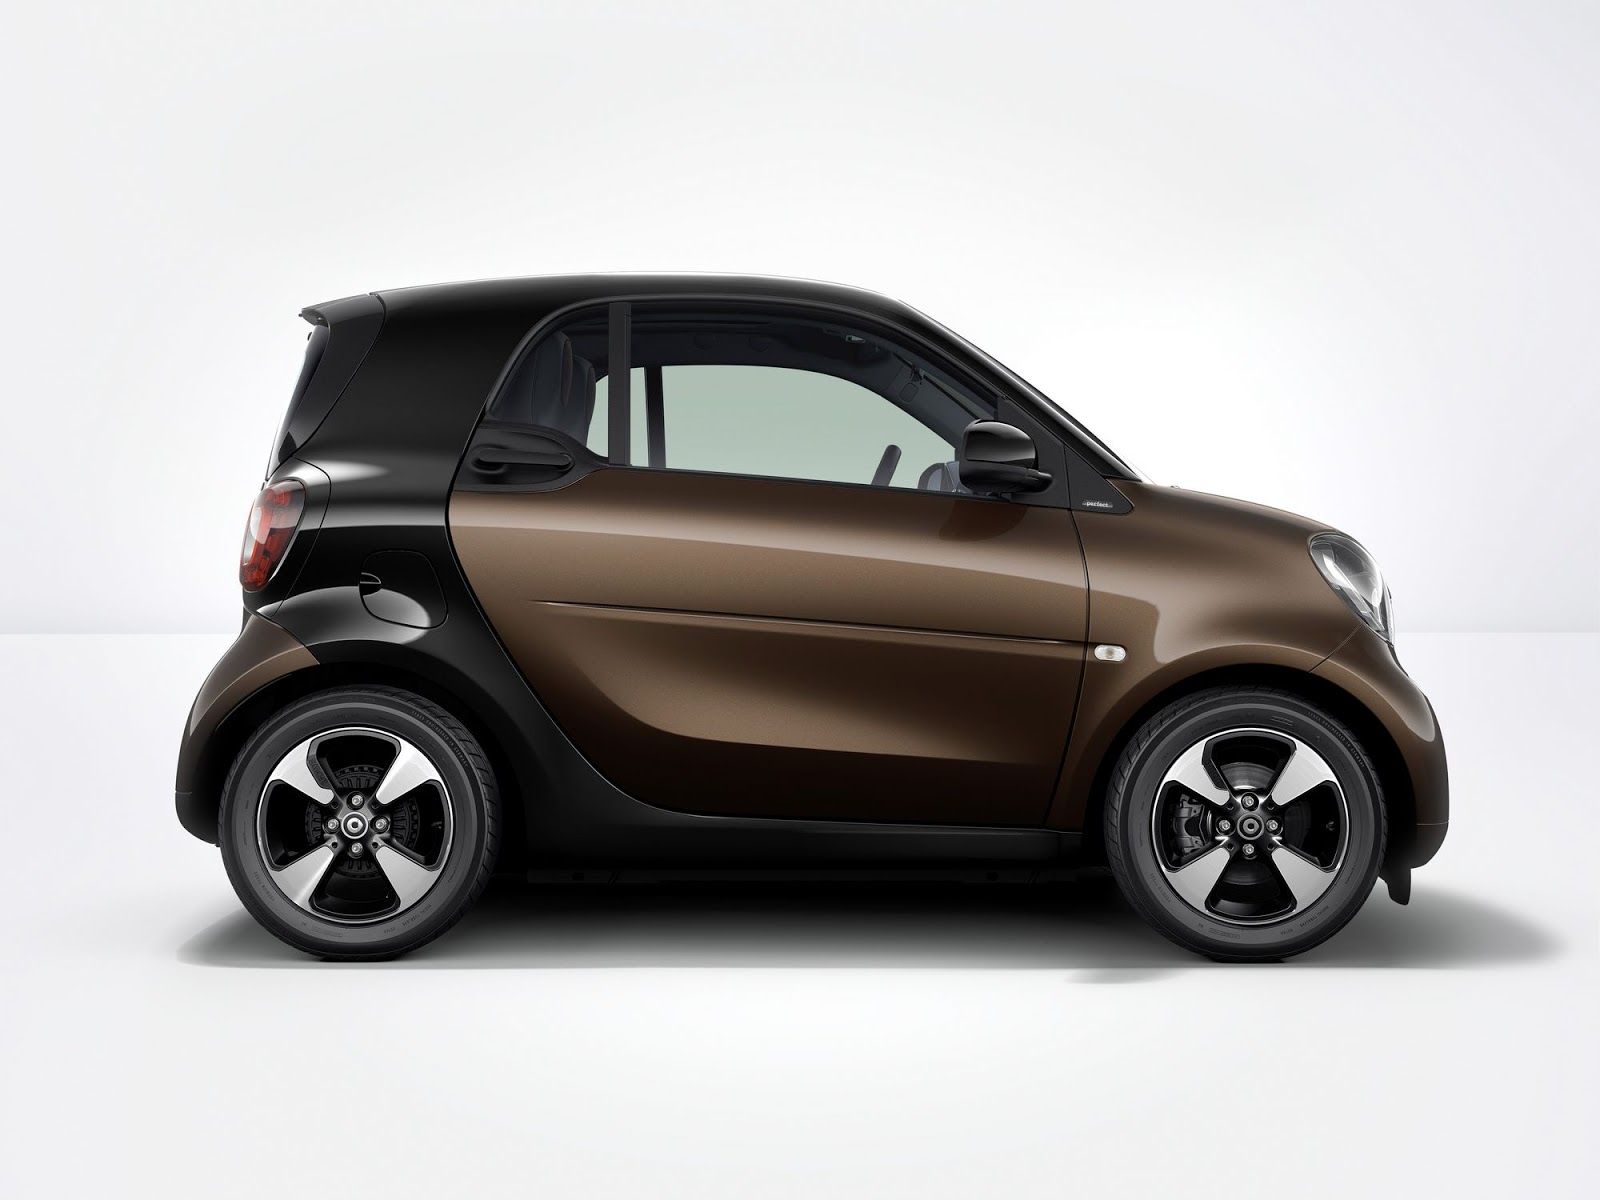 smart fortwo and forfour get minor tech updates in frankfurt carscoops. Black Bedroom Furniture Sets. Home Design Ideas